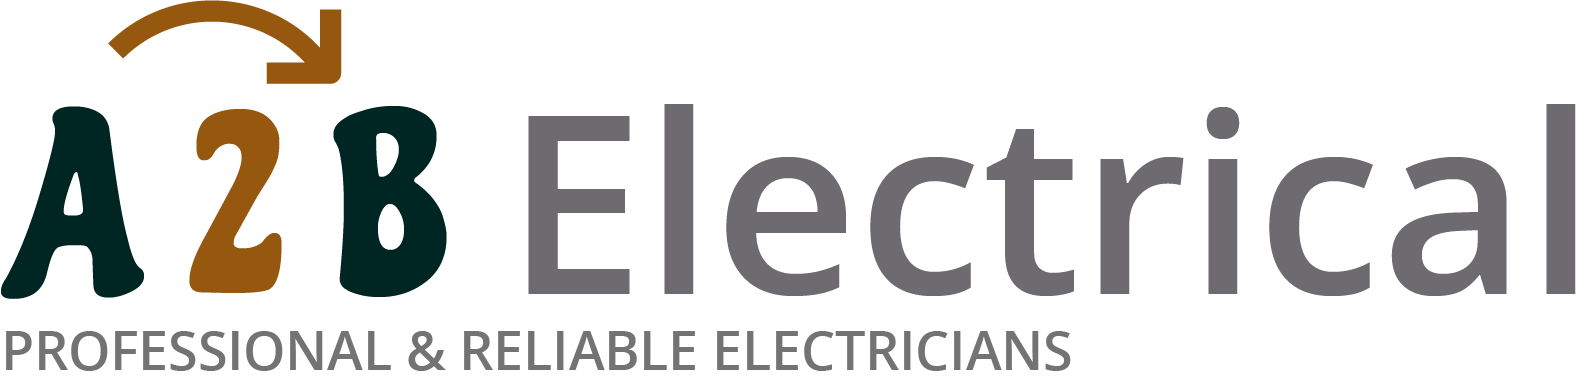 If you have electrical wiring problems in Thamesmead, we can provide an electrician to have a look for you.